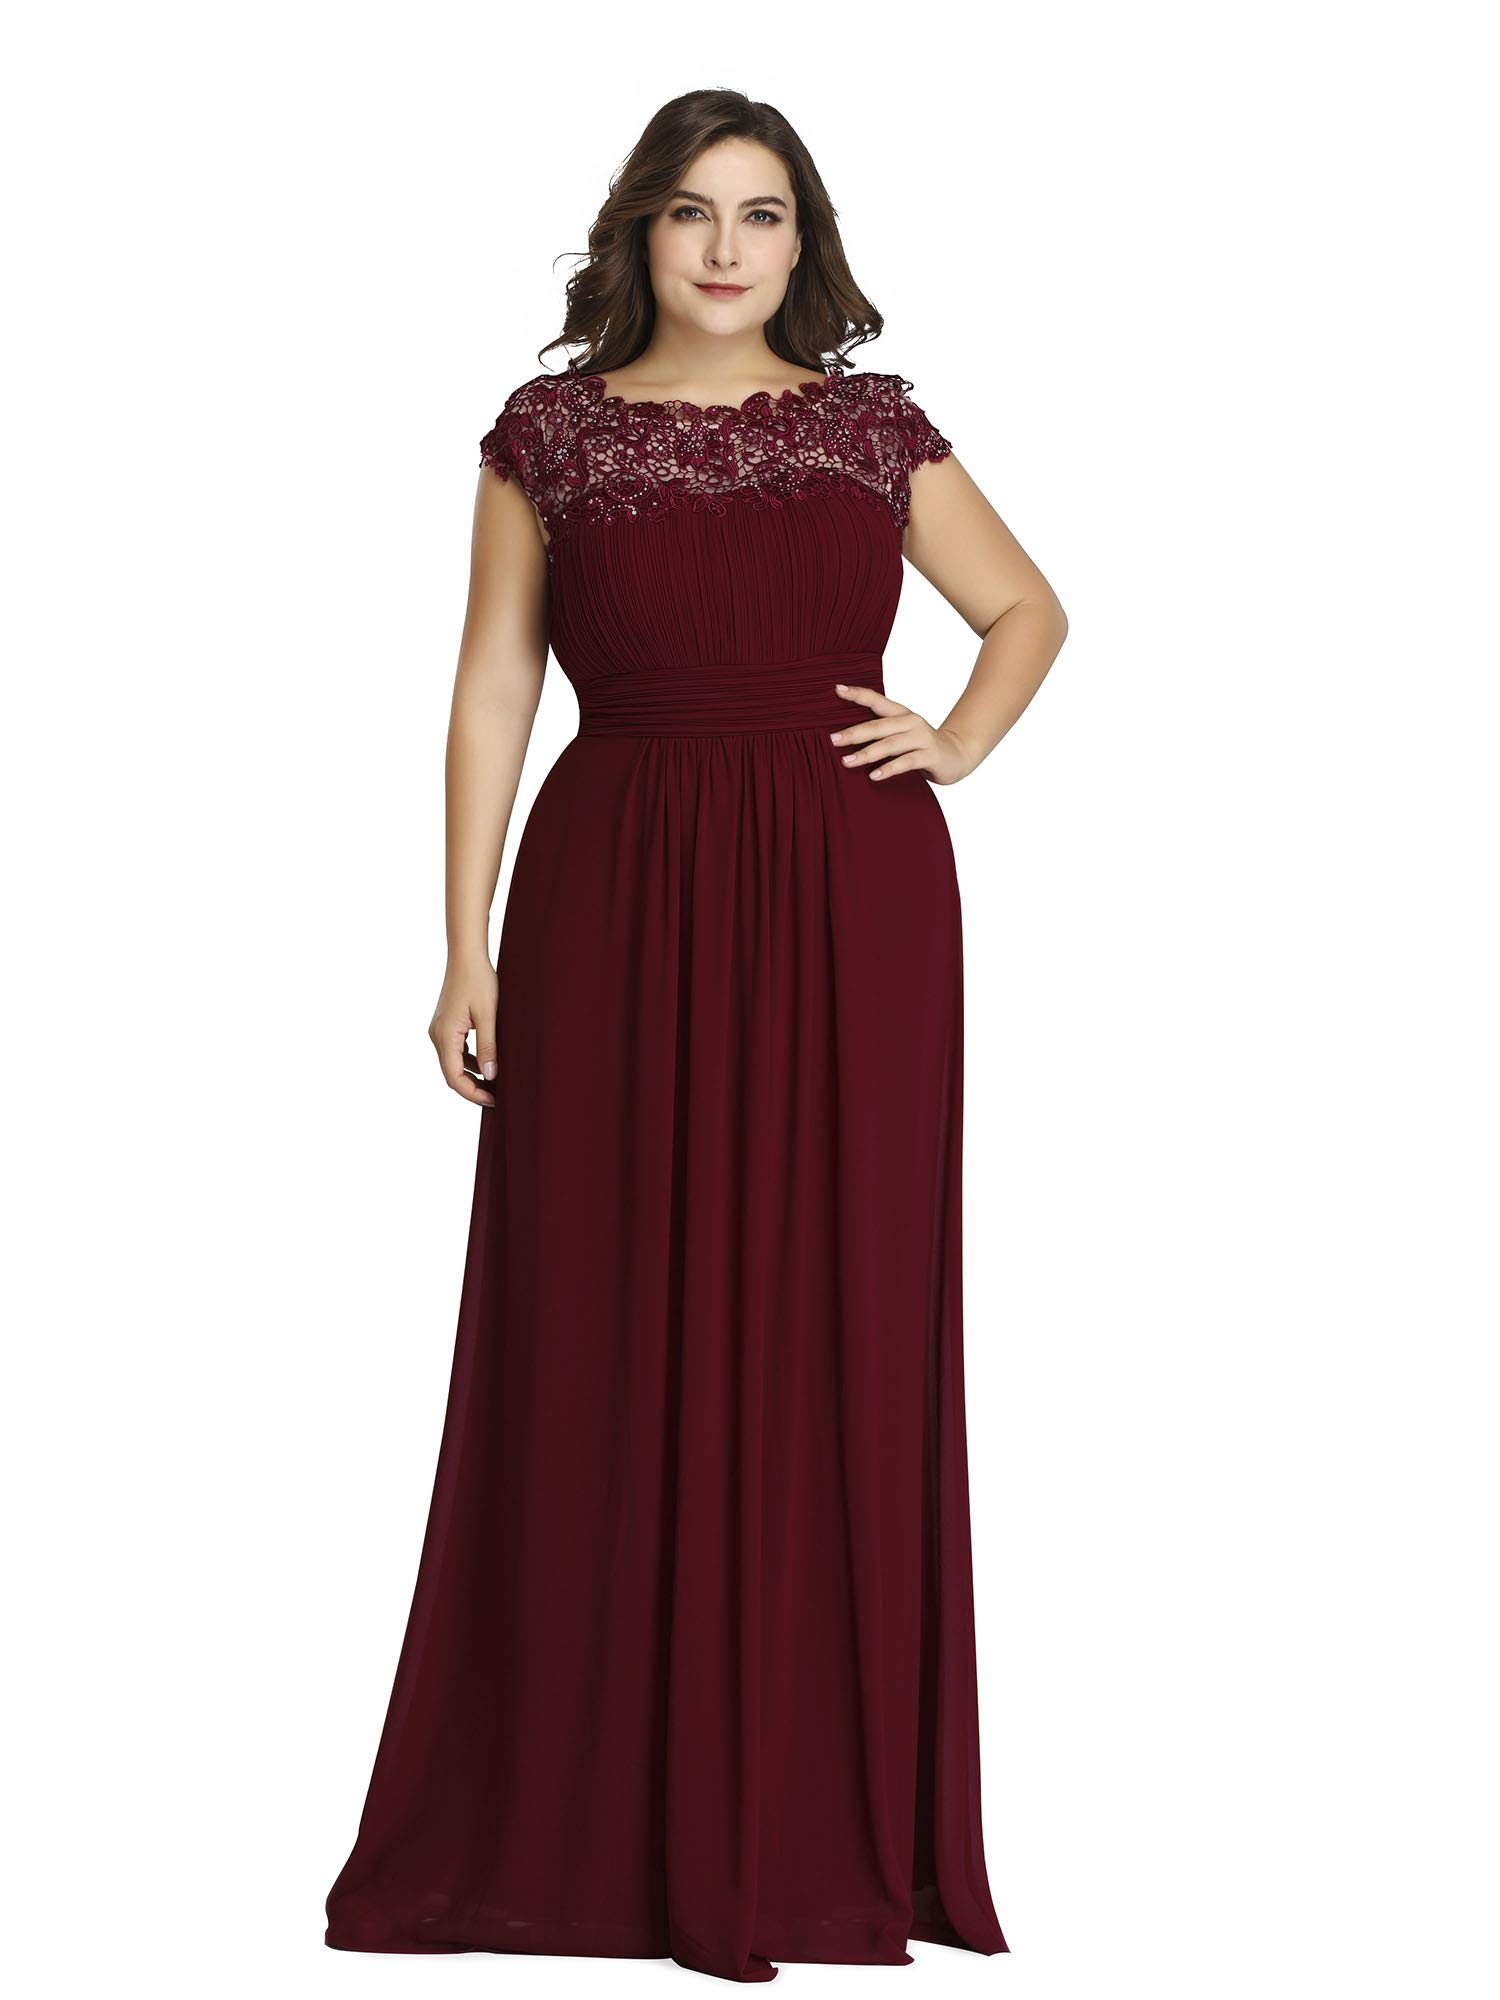 Jazylynbride Cap Sleeves Long Chiffon Formal Evening Dress Wedding Party Gowns with Beading